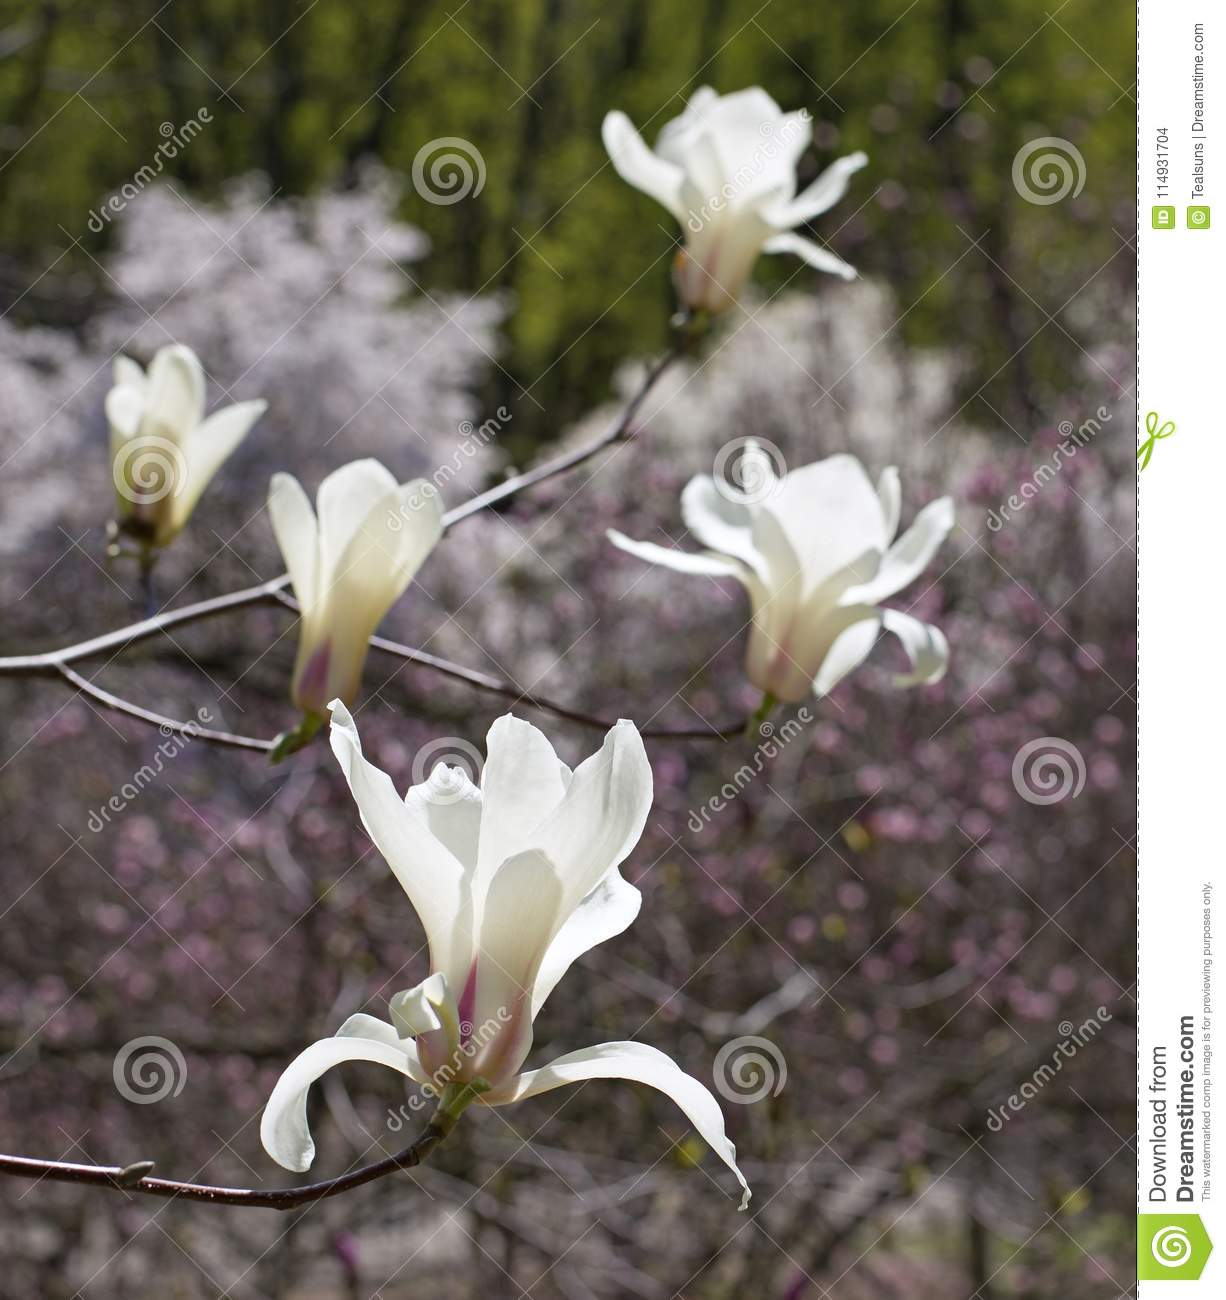 Big White Magnolia Flowers On The Magnolia Tree Stock Photo Image